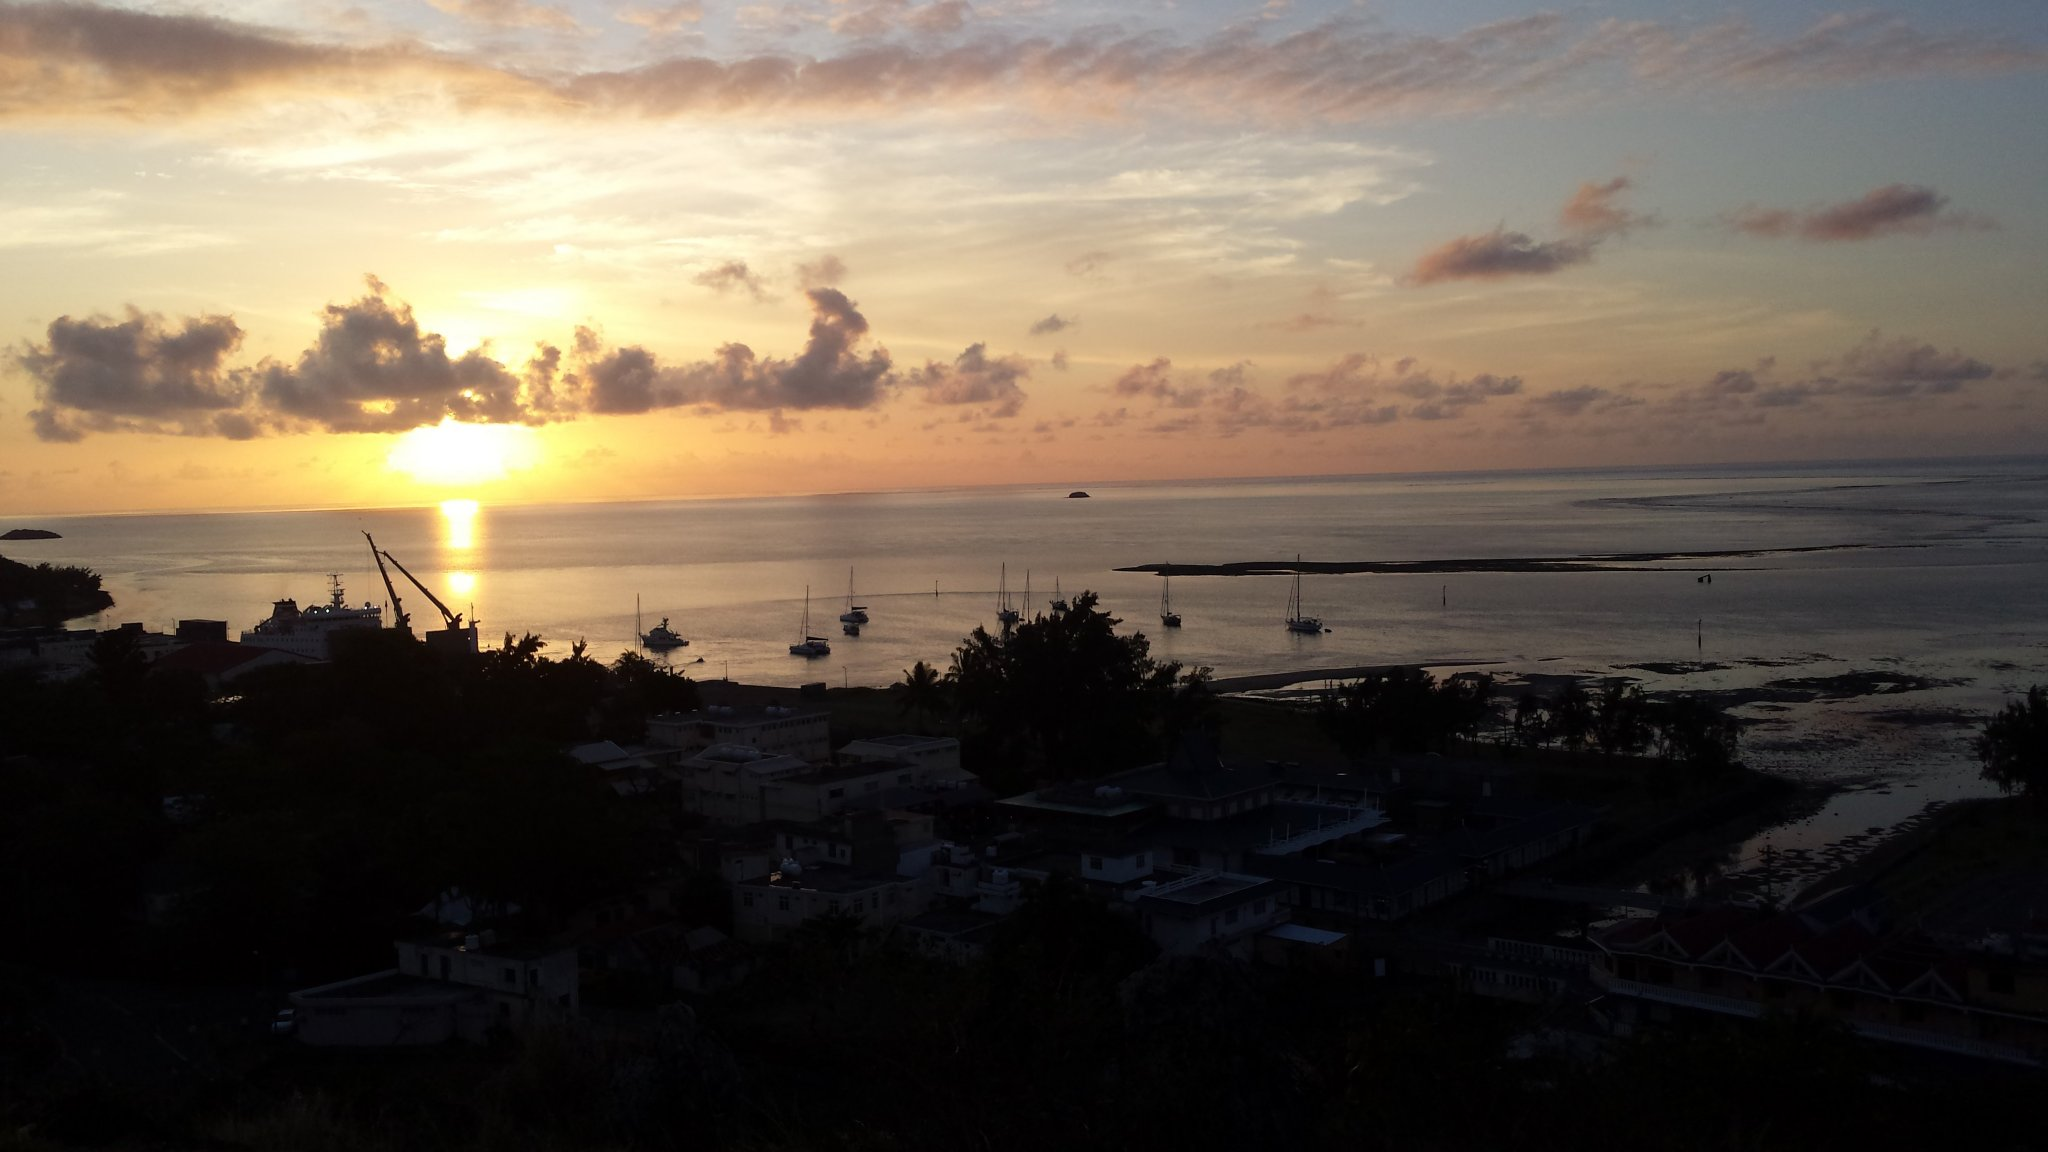 Remote-Island-Indian-Ocean-Rodrigues-harbour-Port-Mathurin-Sunset